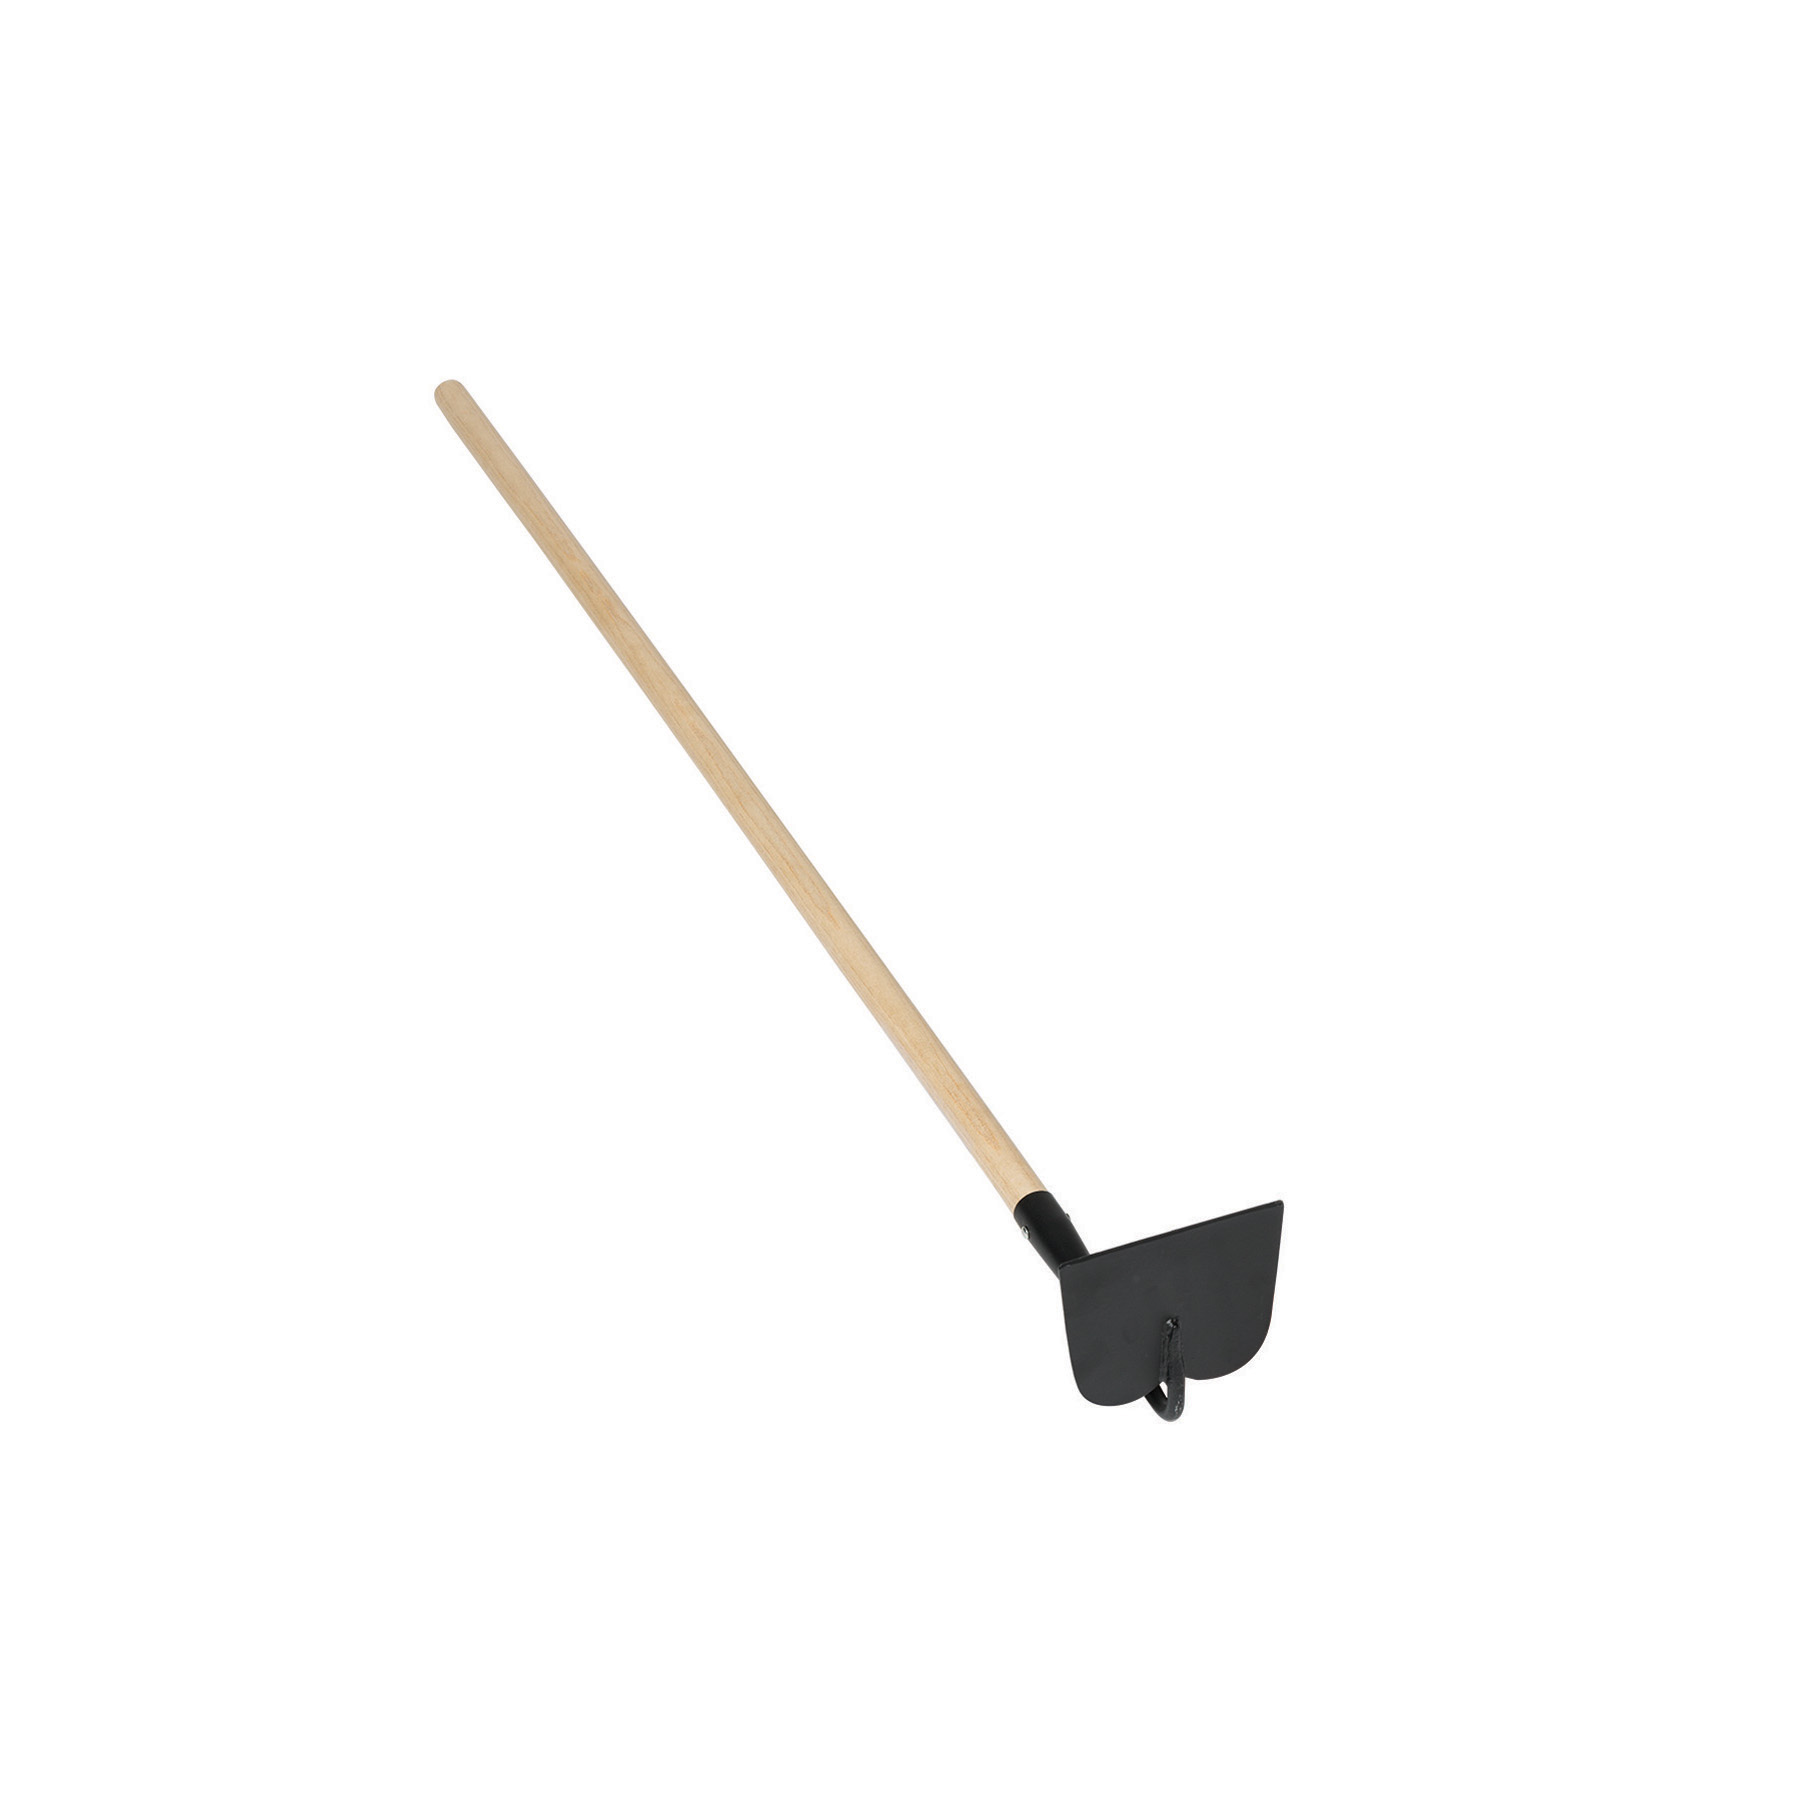 Smart buy gh 90 garden hoe welded head 48 hardwood handle for Picture of a garden hoe